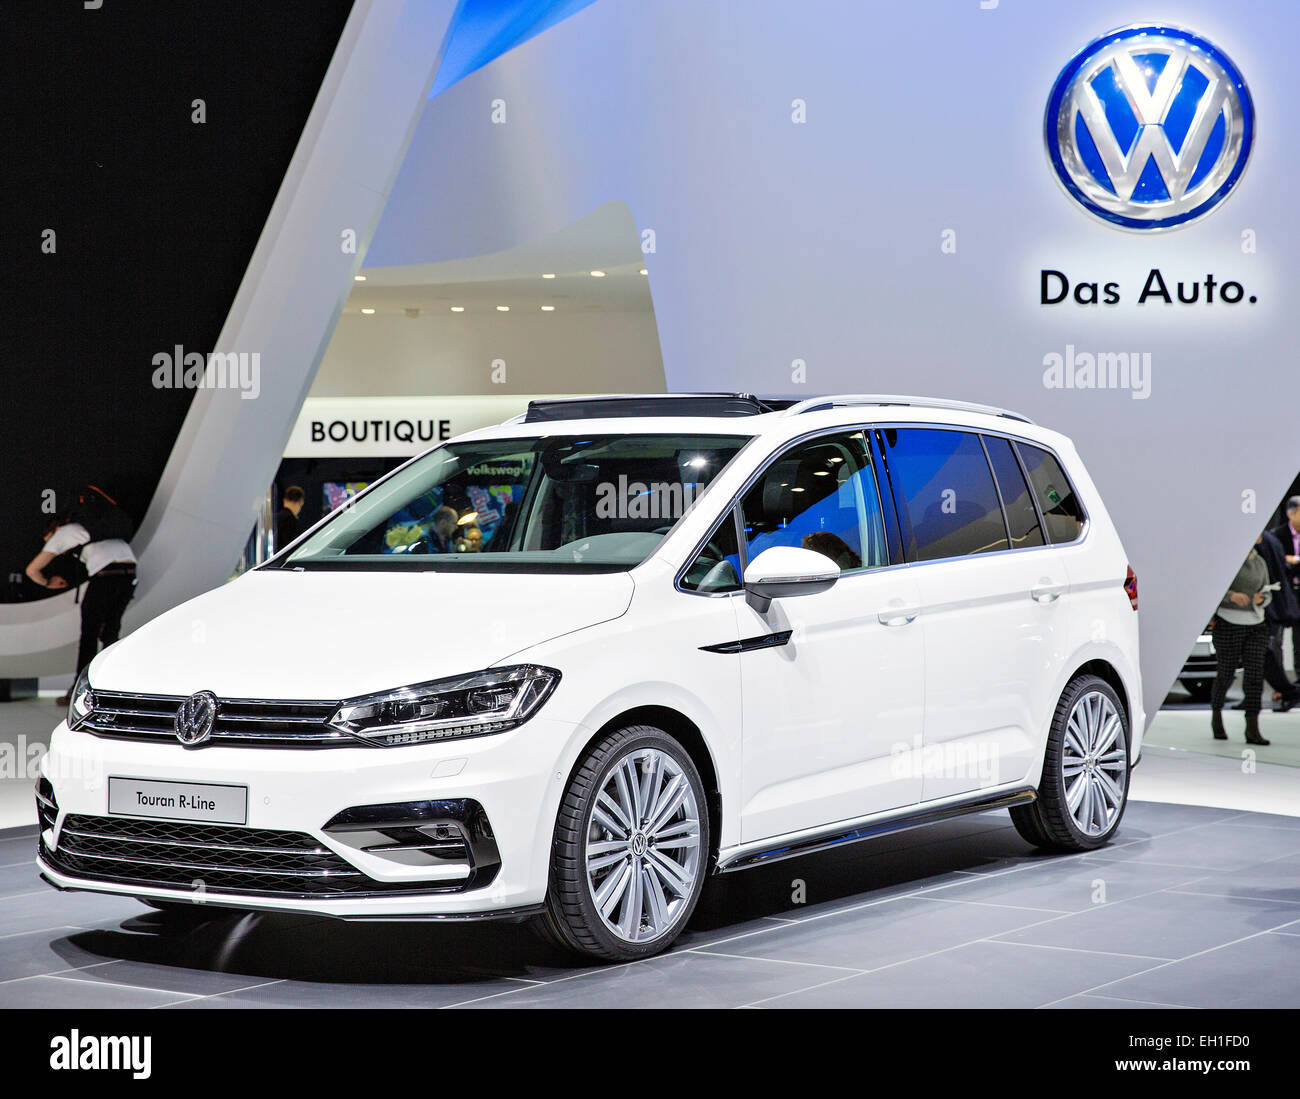 2019 Volkswagen Golf R: Volkswagen Touran R-Line Stock Photo: 79324700